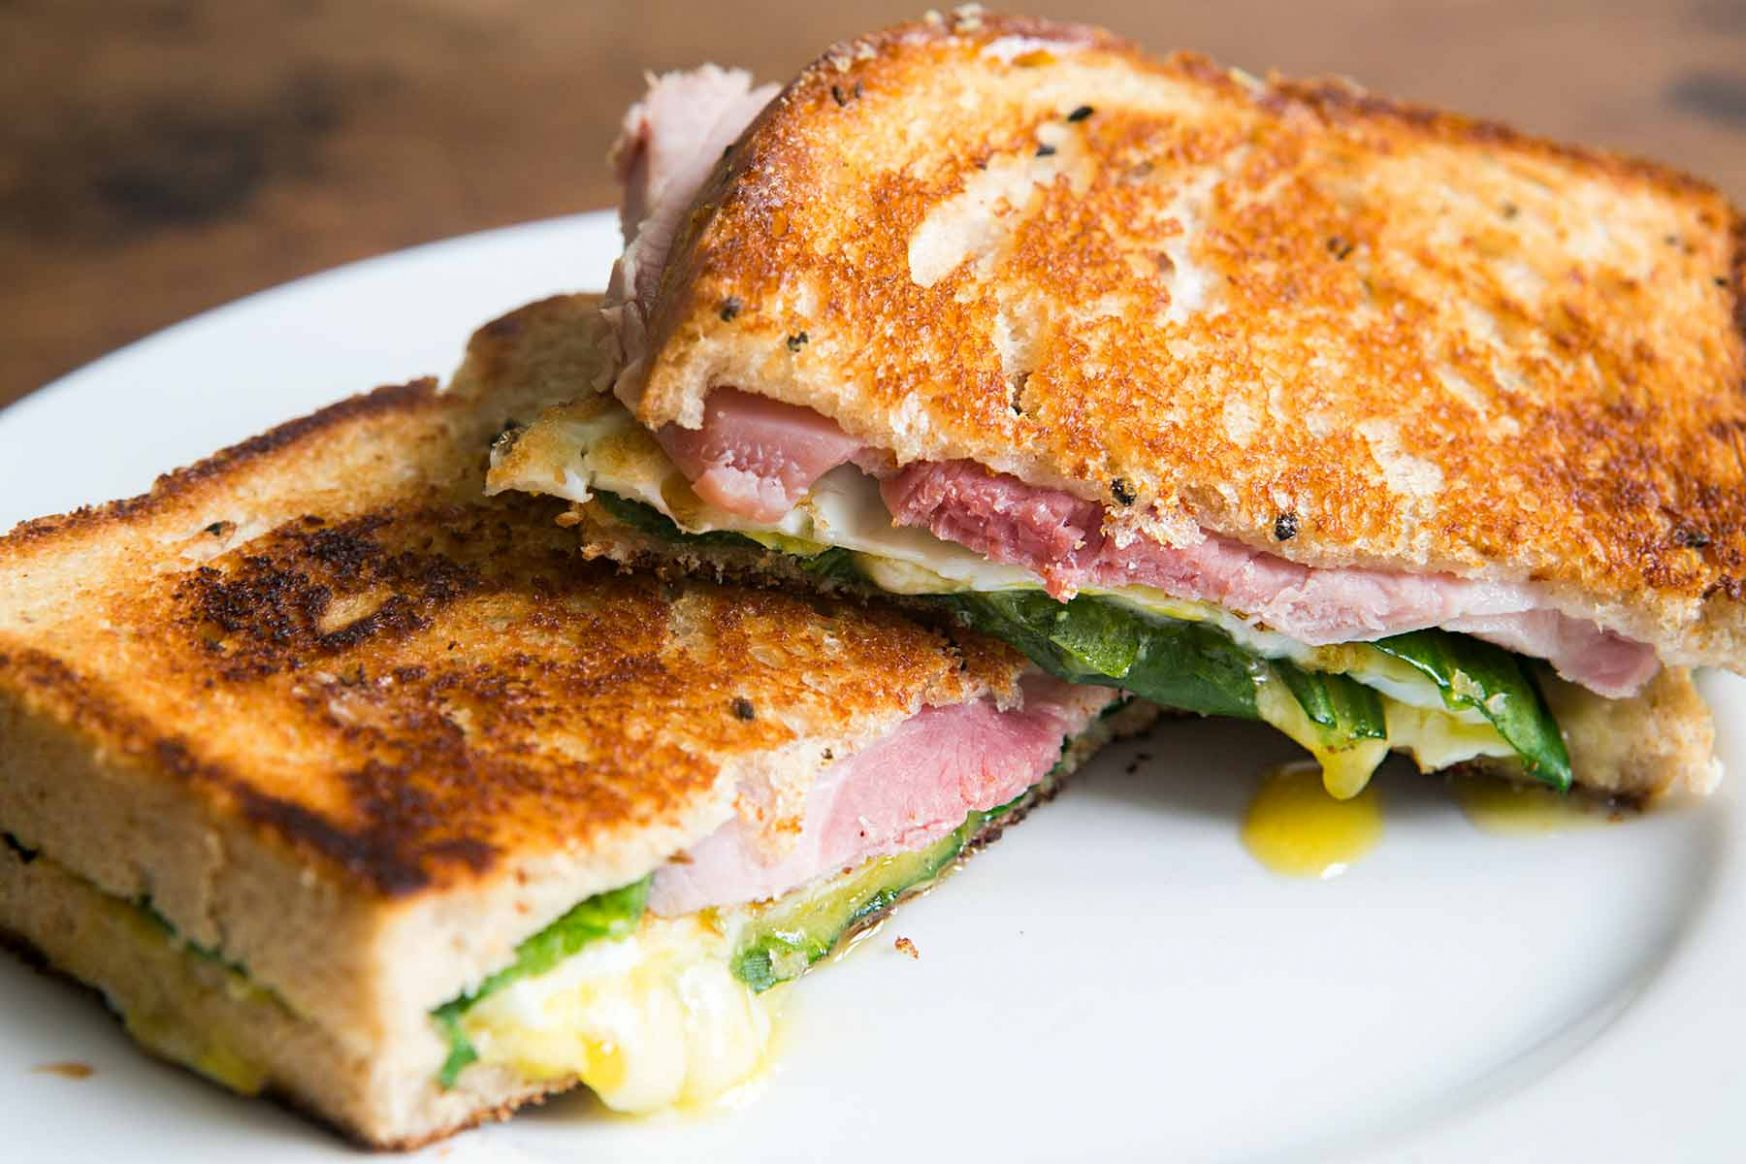 Greens, Eggs, and Ham, Grilled Cheese Sandwich - Sandwich Recipes And Procedures